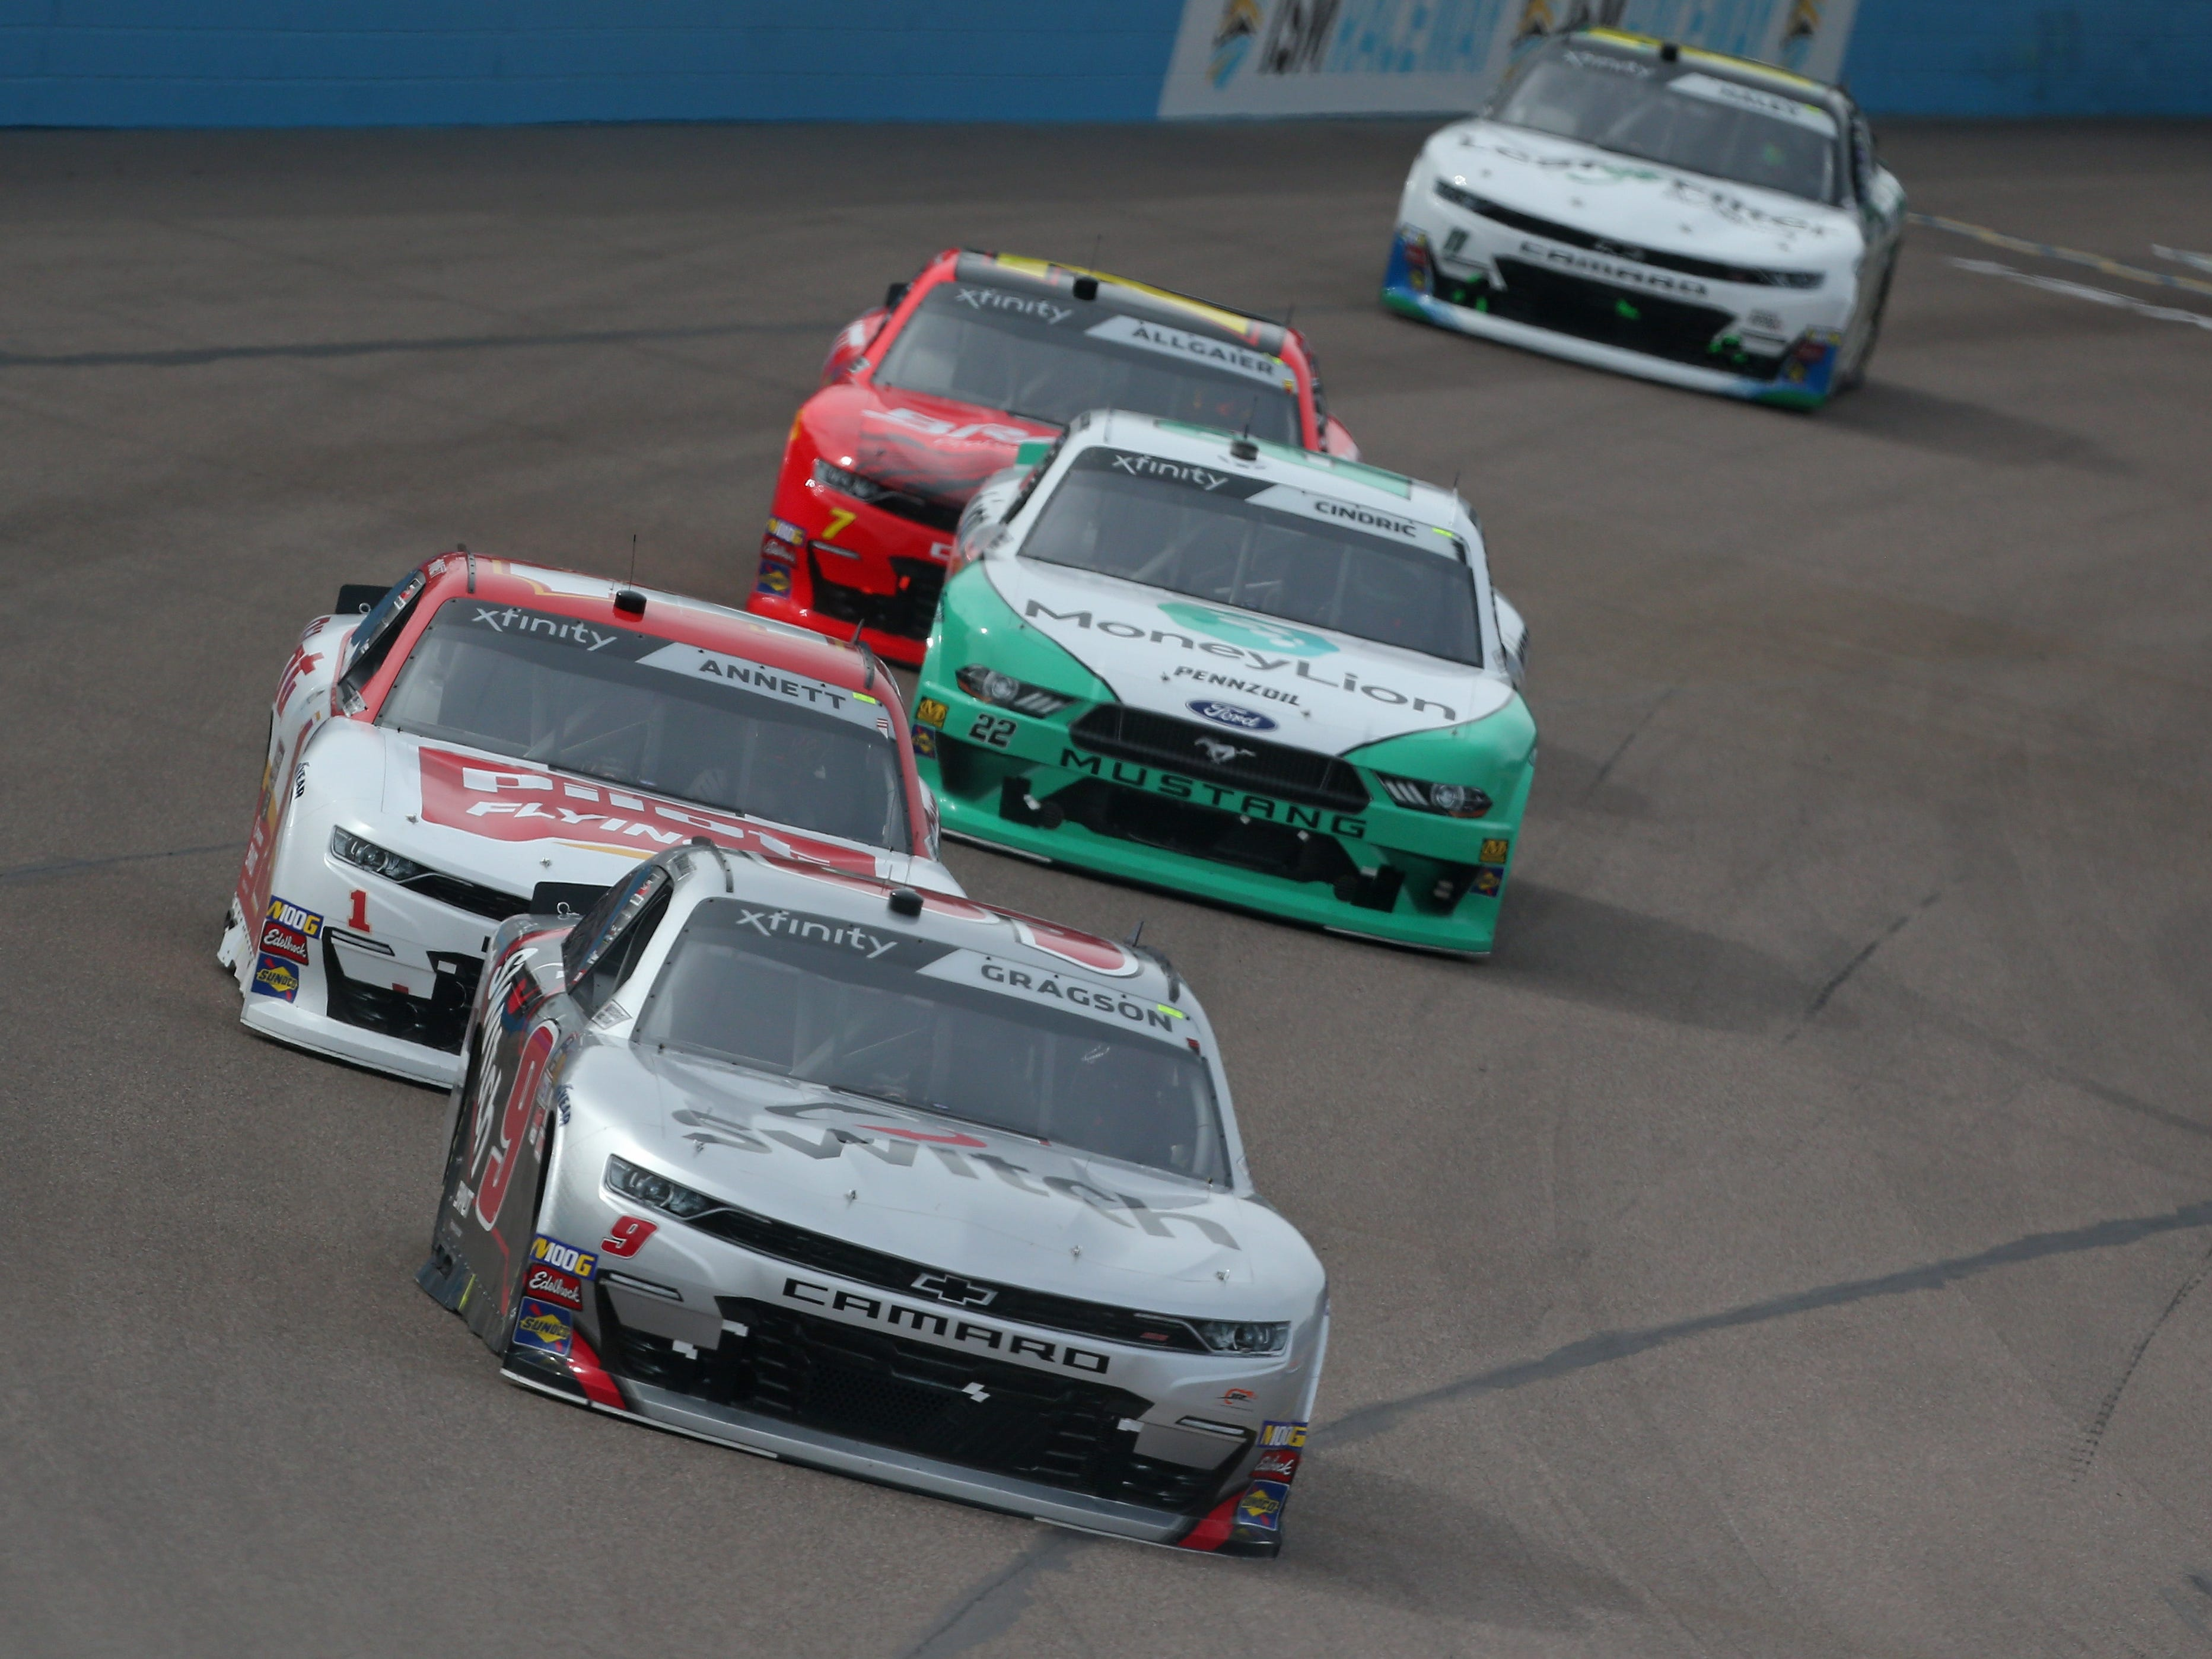 AVONDALE, AZ - MARCH 09:  Noah Gragson, driver of the #9 Switch Chevrolet, leads a pack of cars during the NASCAR Xfinity Series iK9 Service Dog 200 at ISM Raceway on March 9, 2019 in Avondale, Arizona.